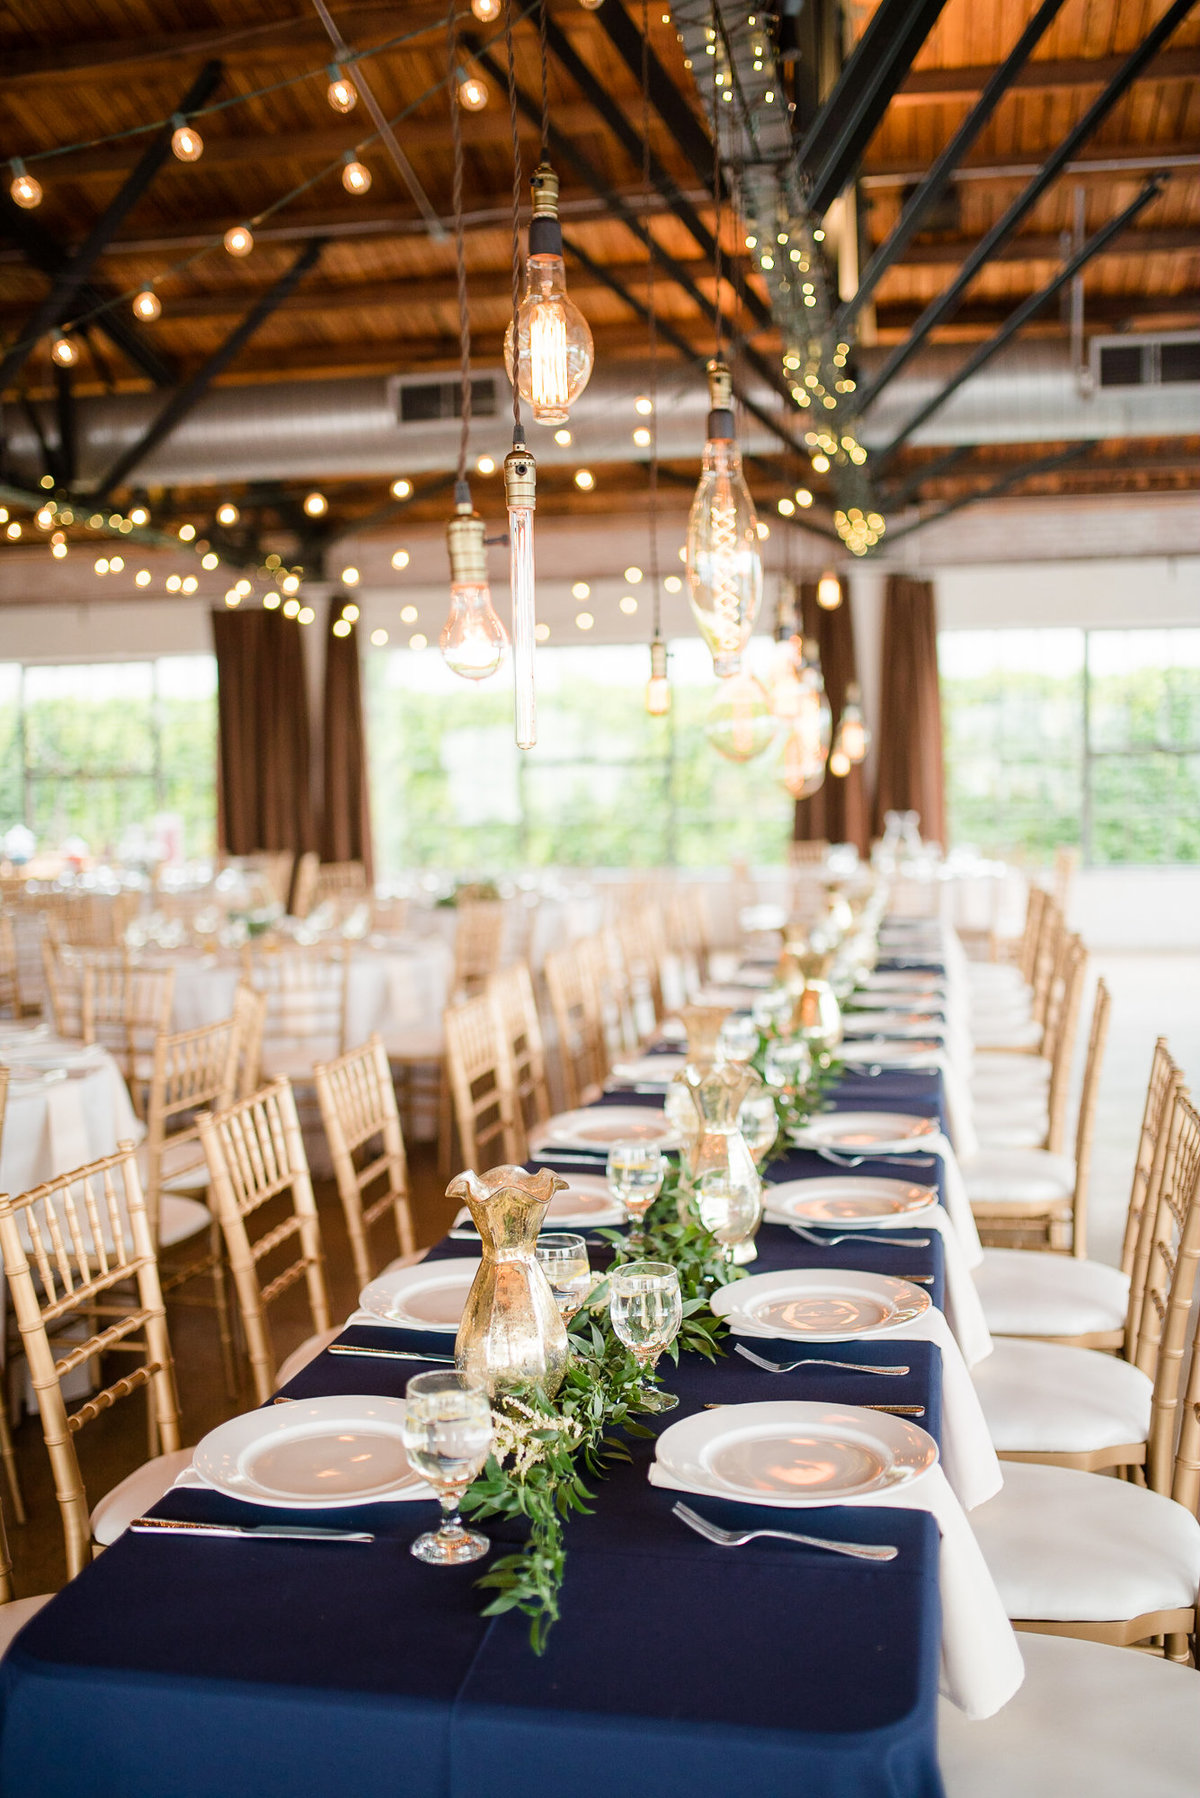 Reception setup with rustic and modern details